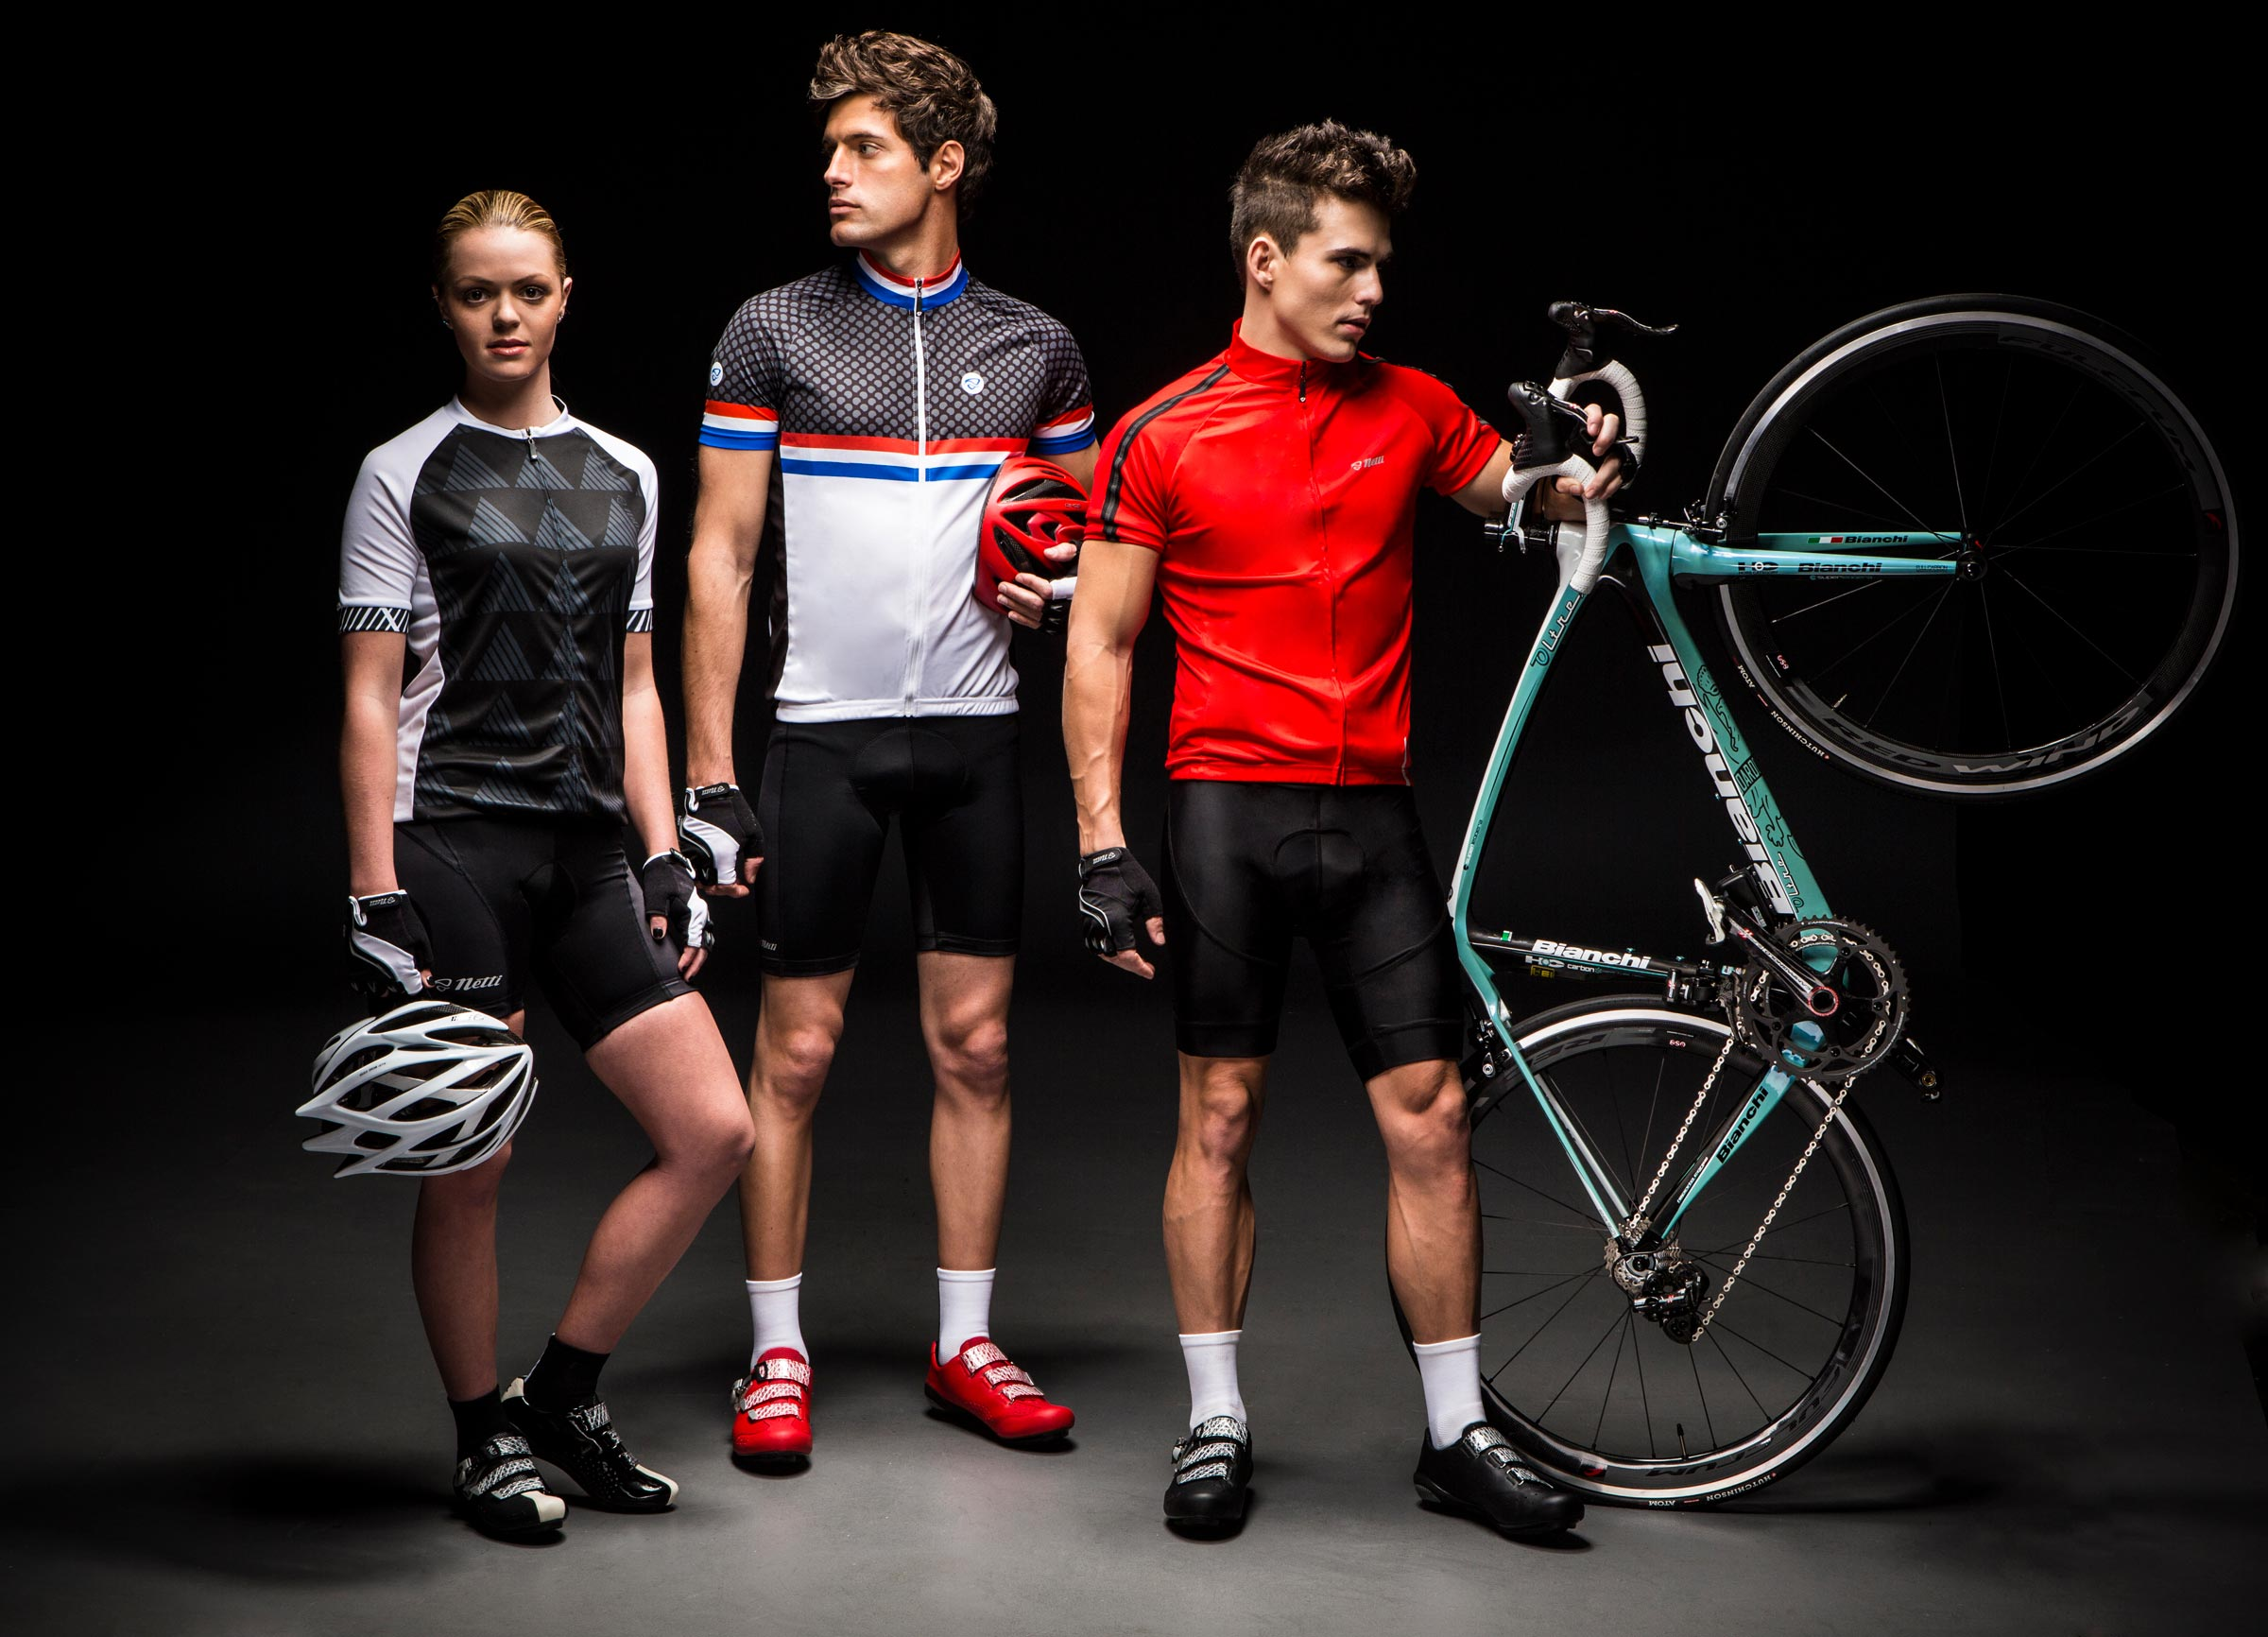 models wearing cycling clothing in studio